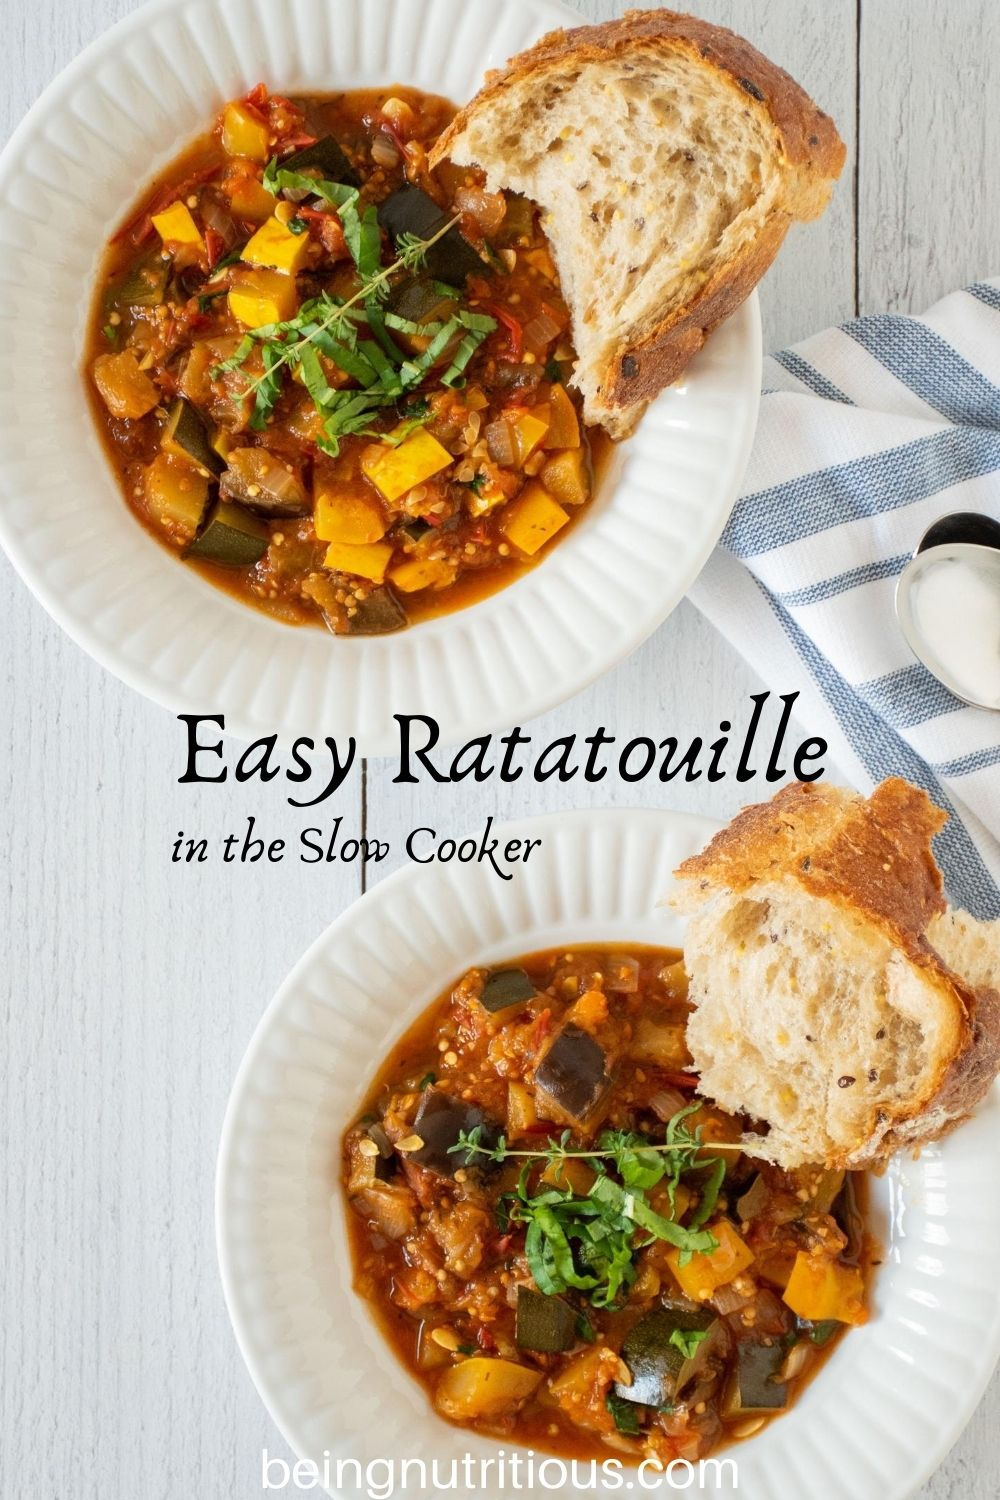 Overhead shot of 2 bowls of ratatouille with rustic bread. Text overlay: Easy Ratatouille in the Slow Cooker.